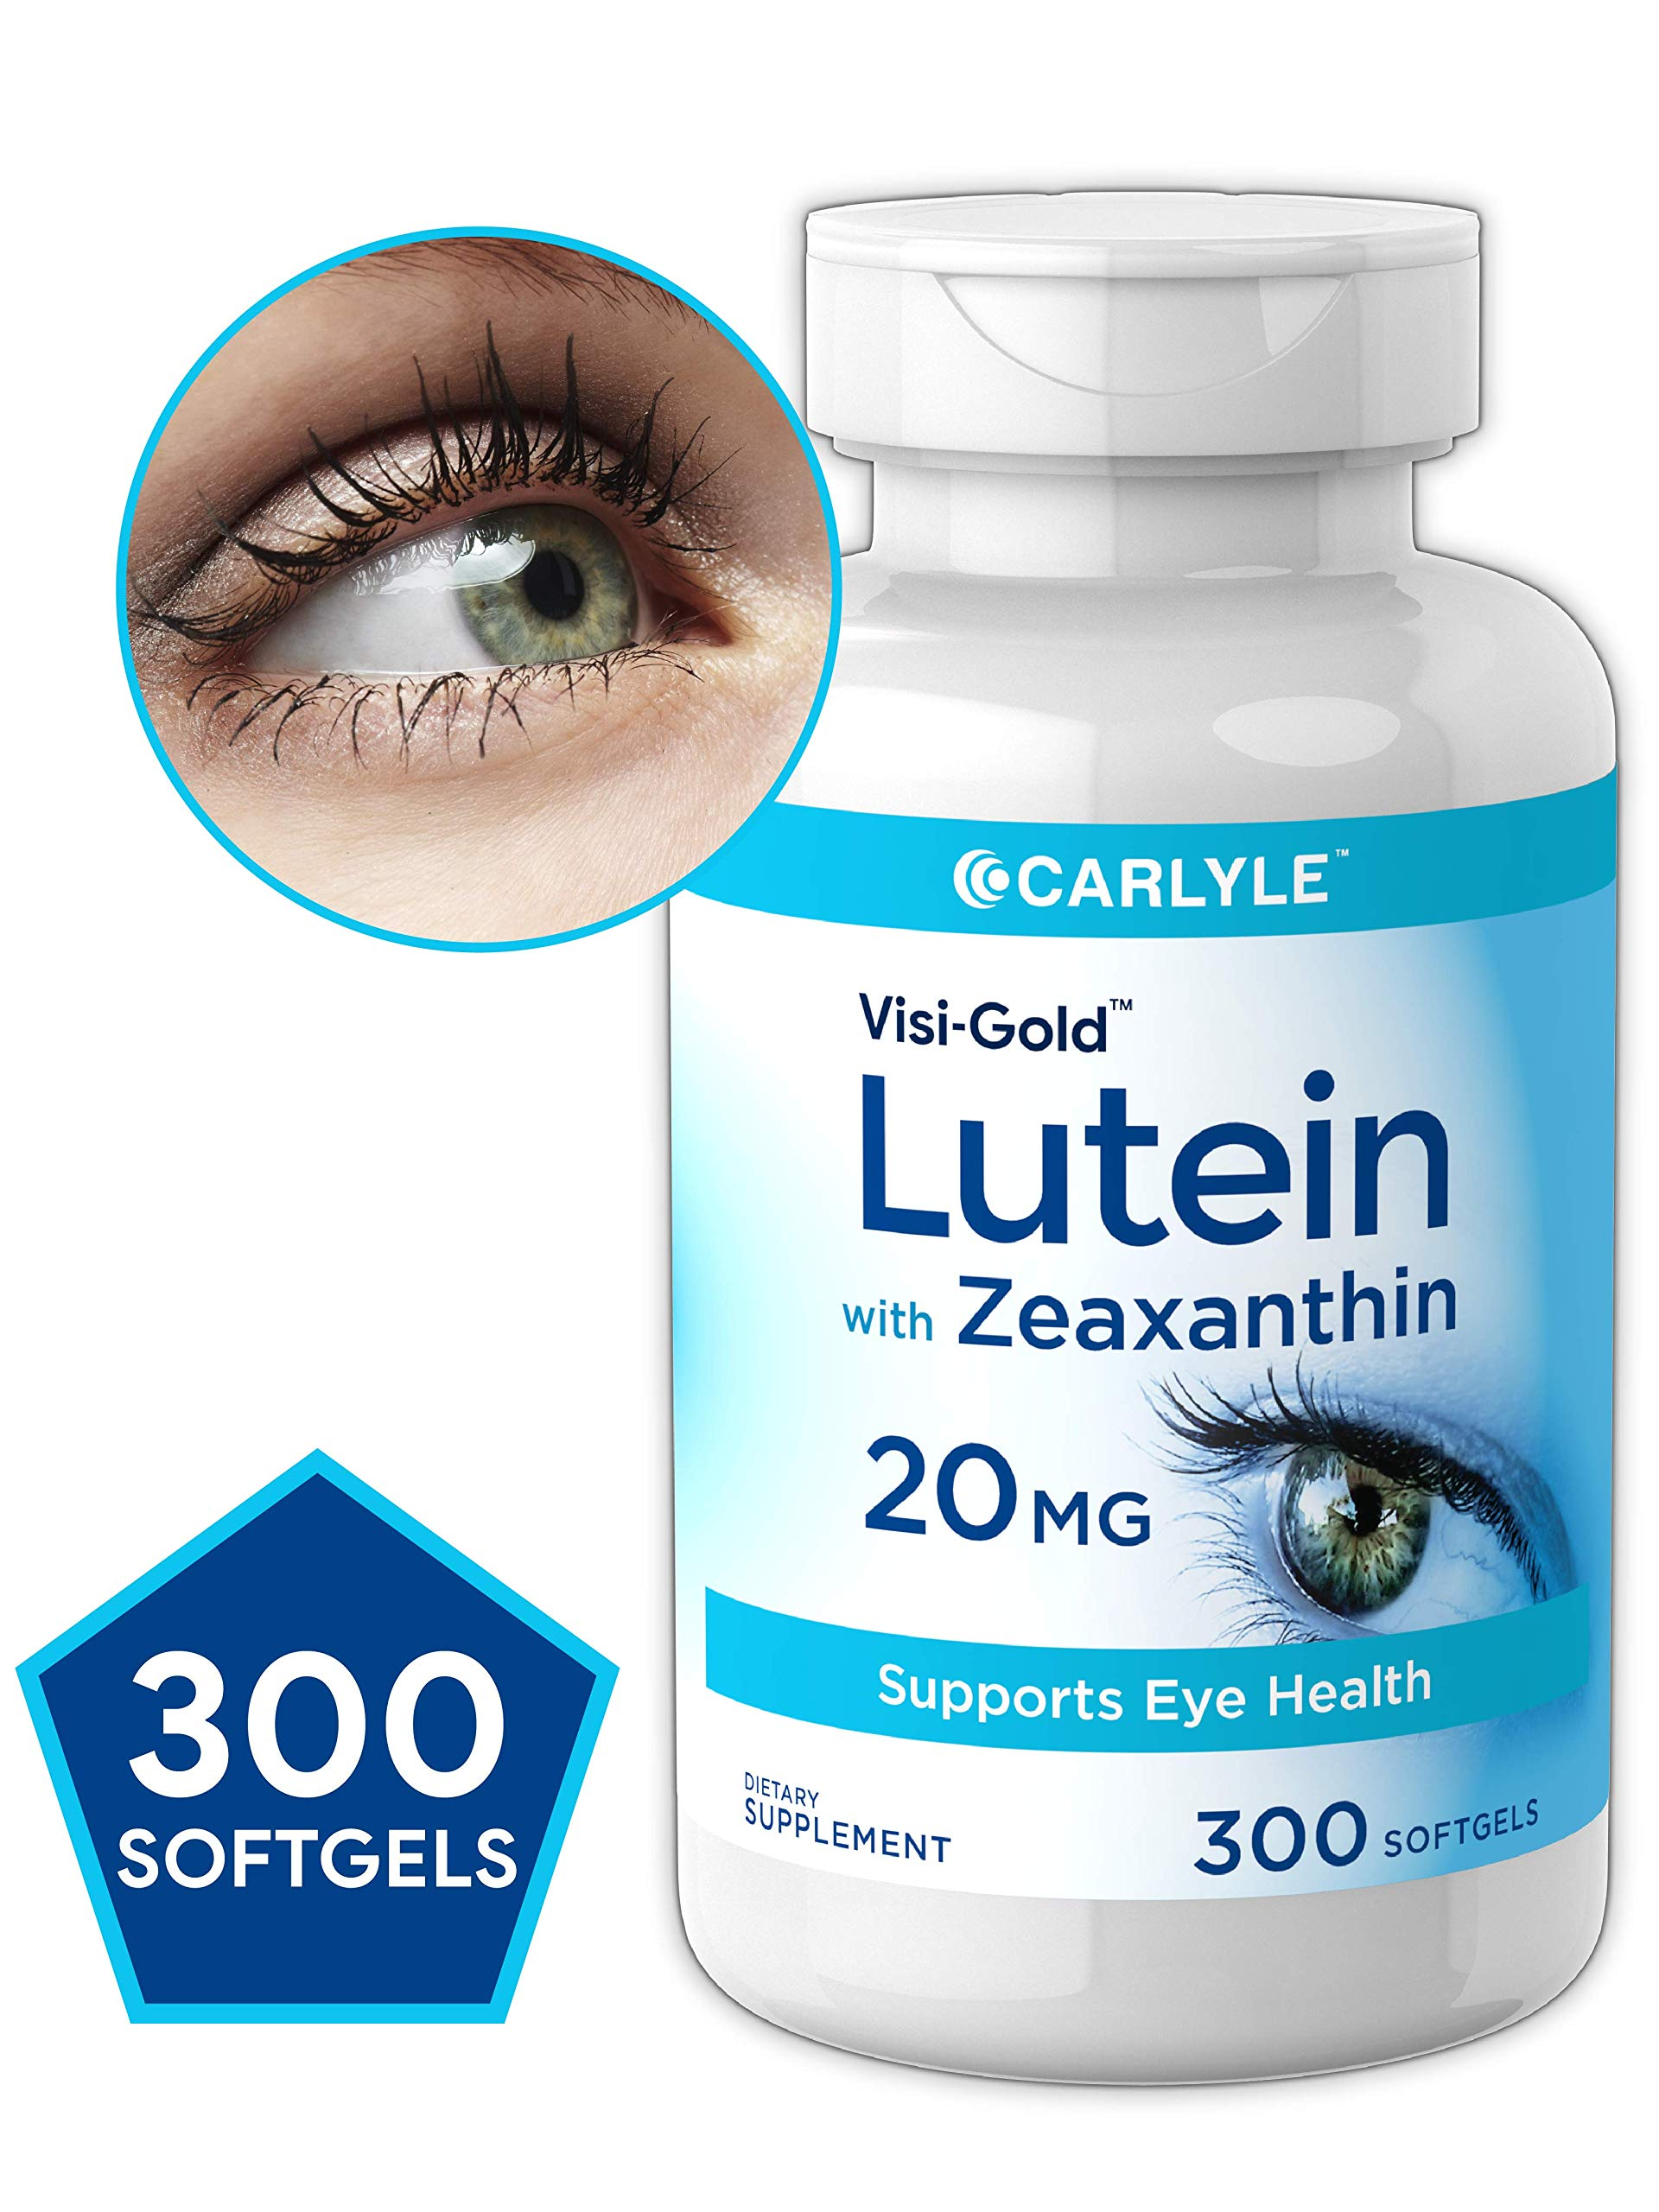 Lutein and Zeaxanthin 20 mg | 300 Softgels | Value Size | Supports Eye Health | Non-GMO, Gluten Free Supplement | by Carlyle by Carlyle